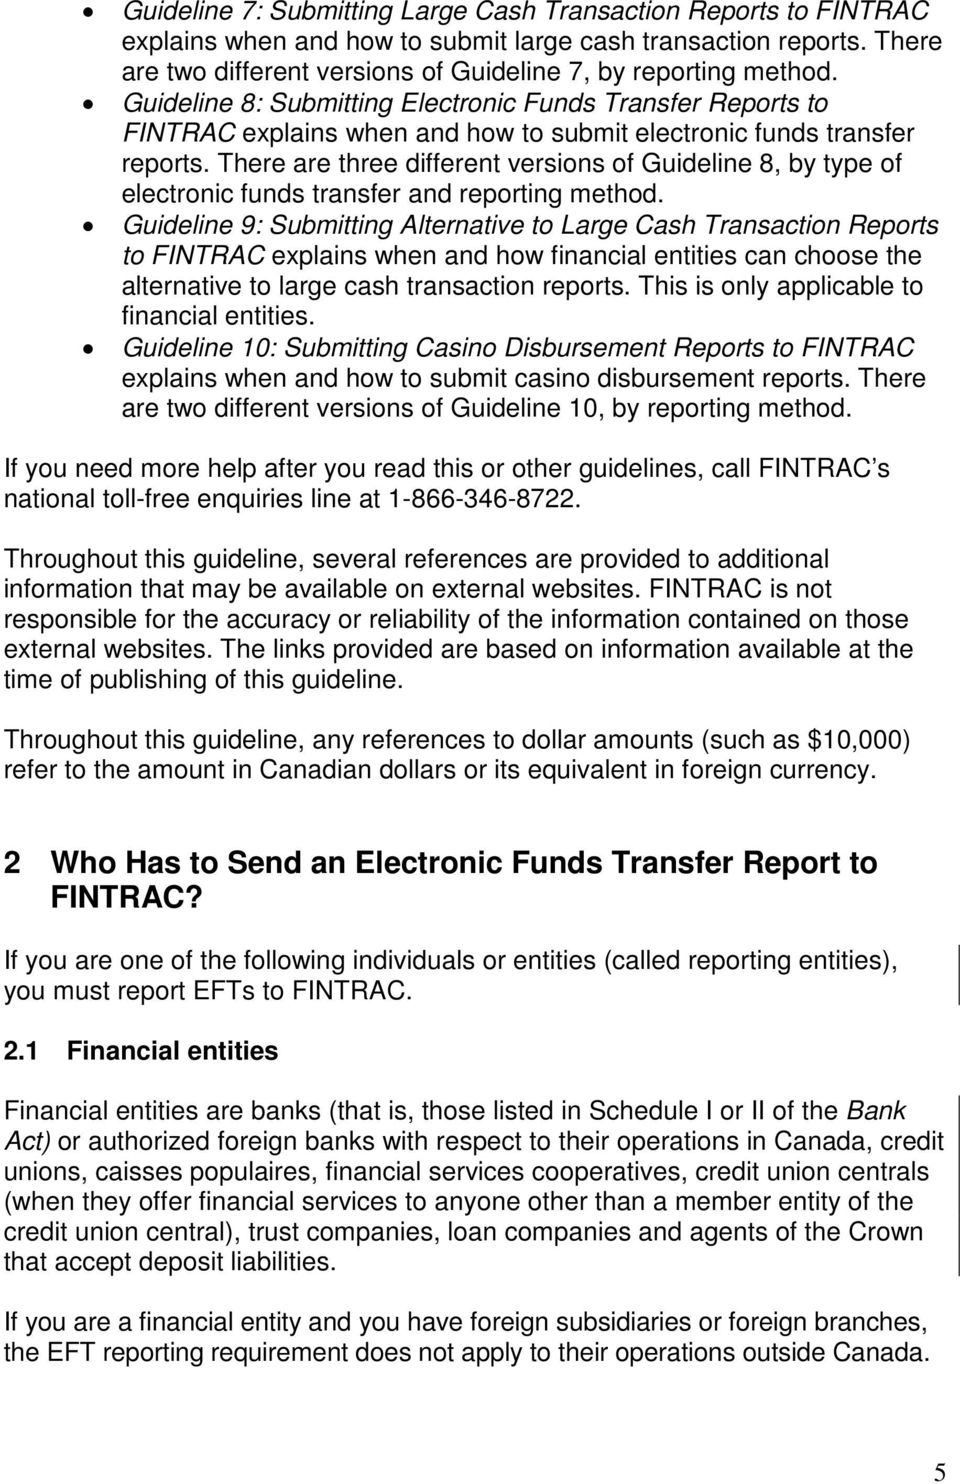 There are three different versions of Guideline 8, by type of electronic funds transfer and reporting method.